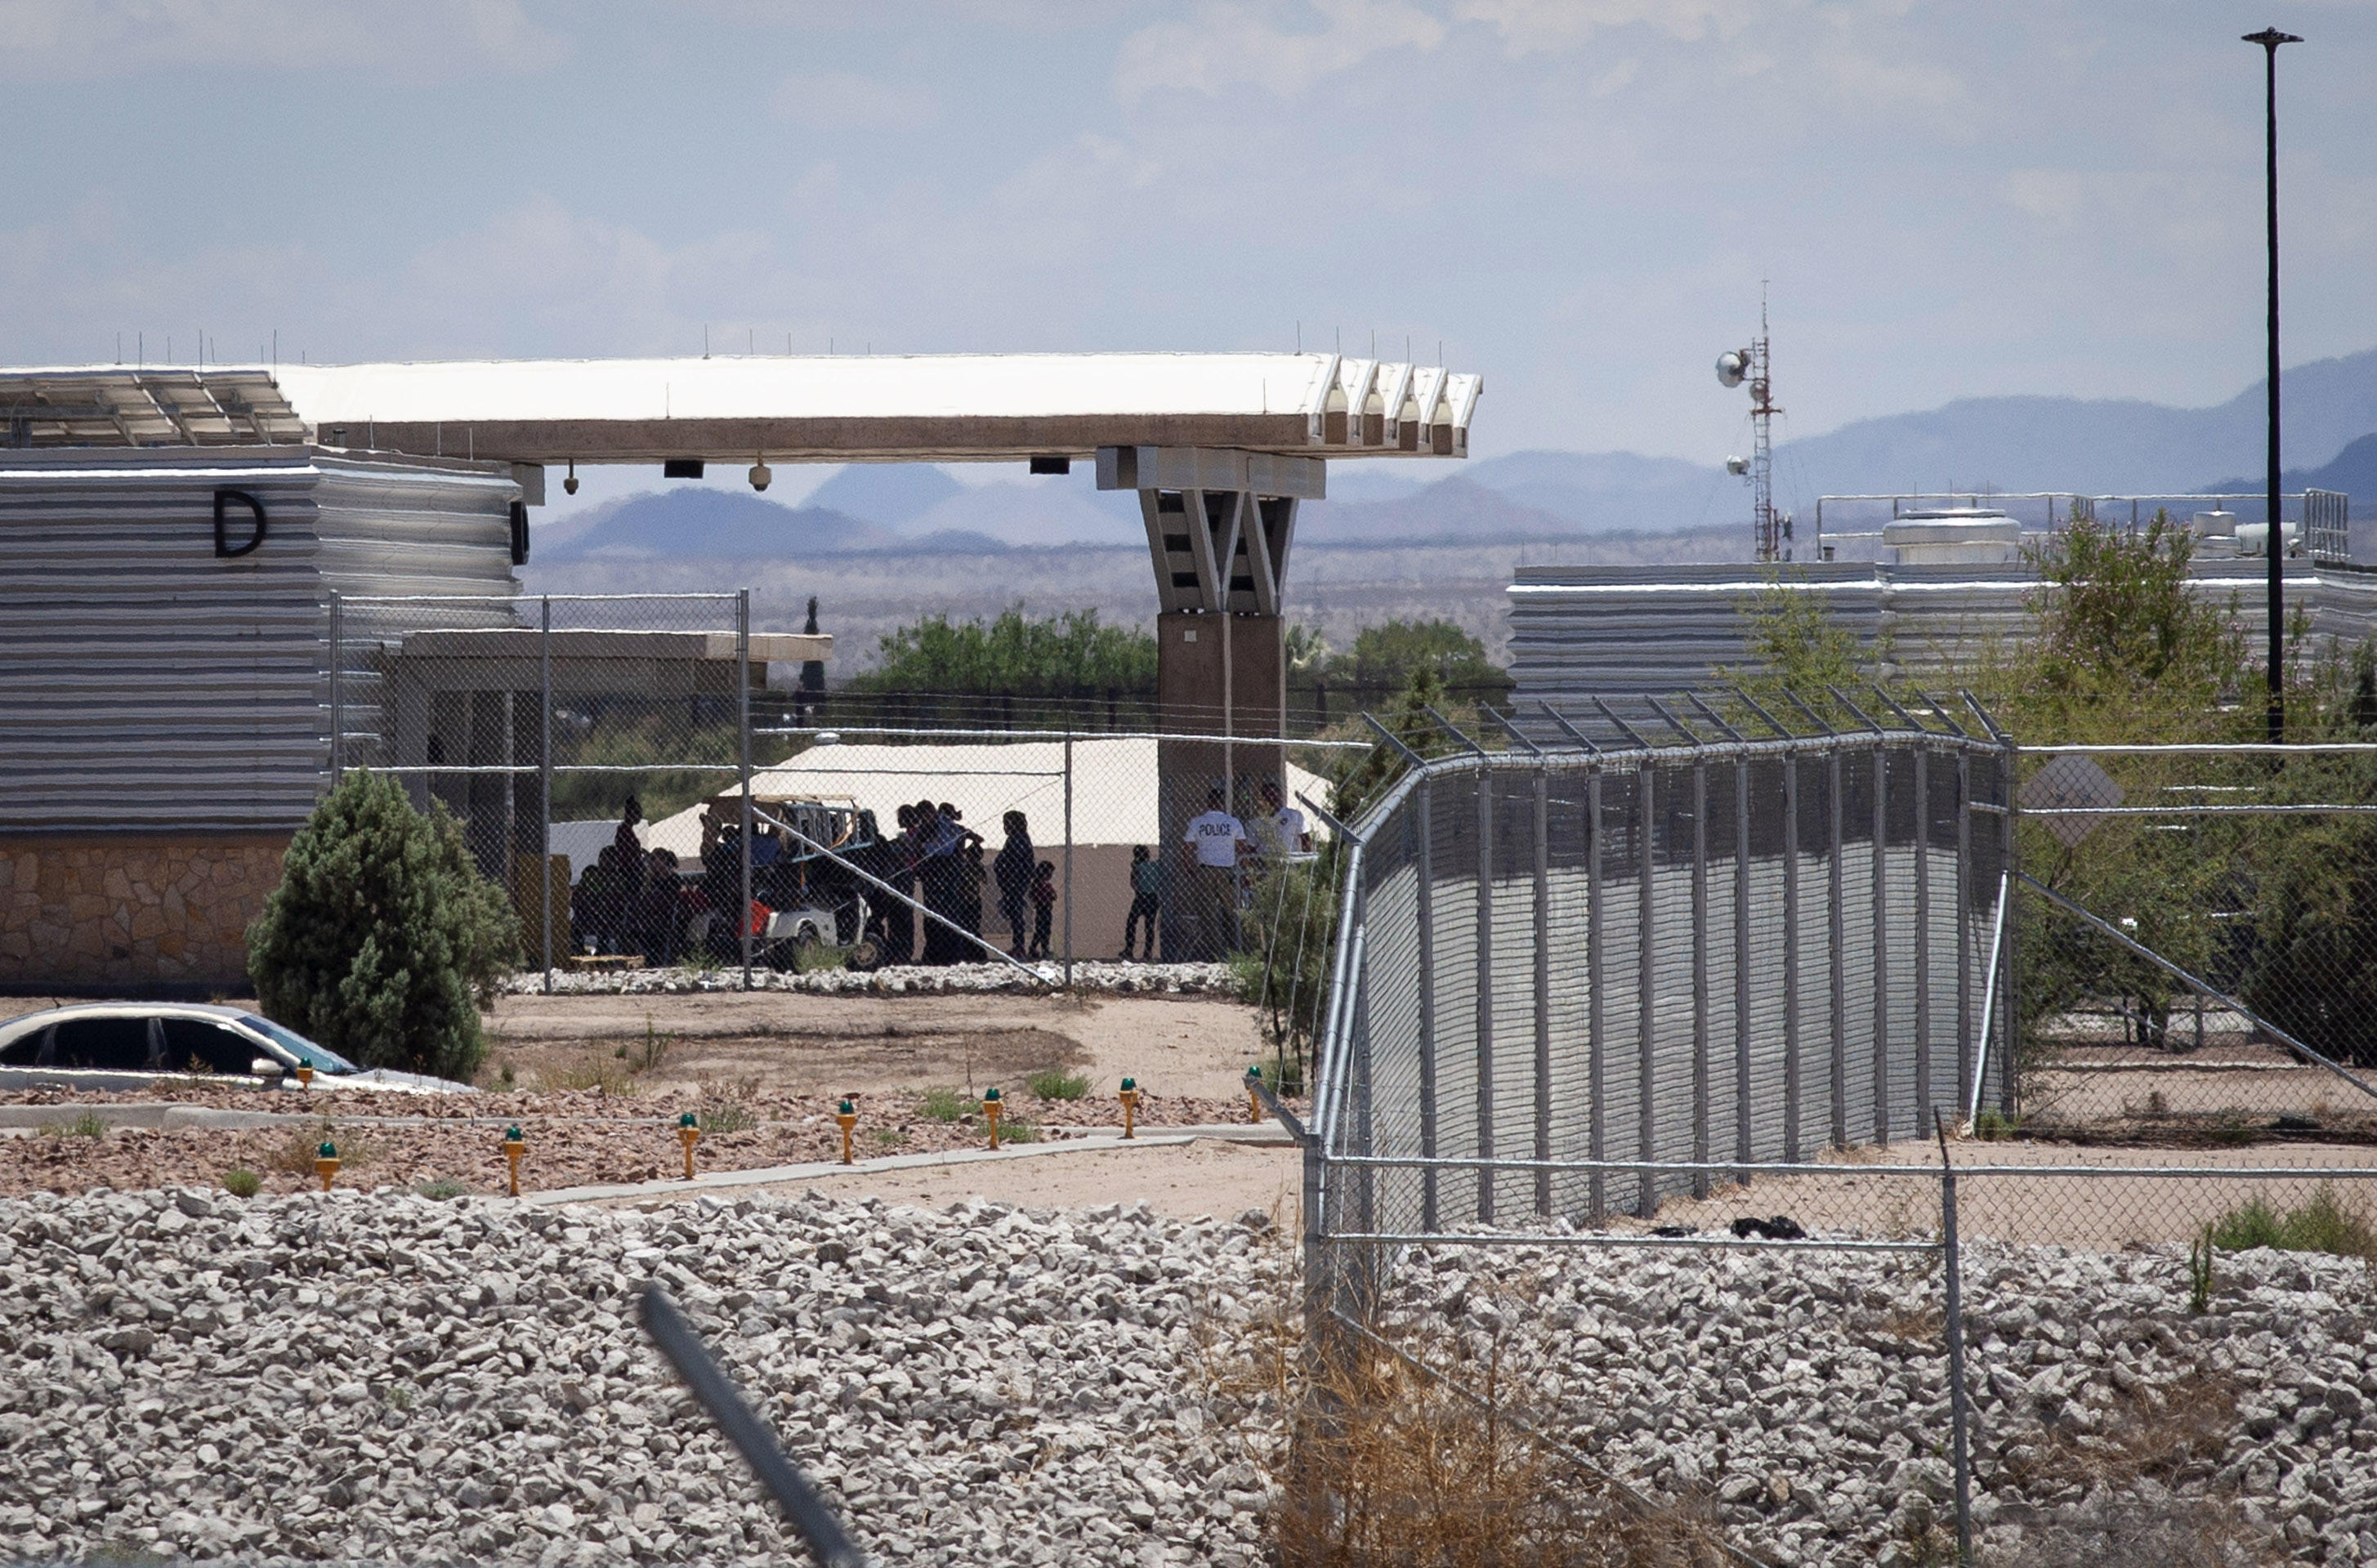 Feds holding 12,800 migrant children in detention centers